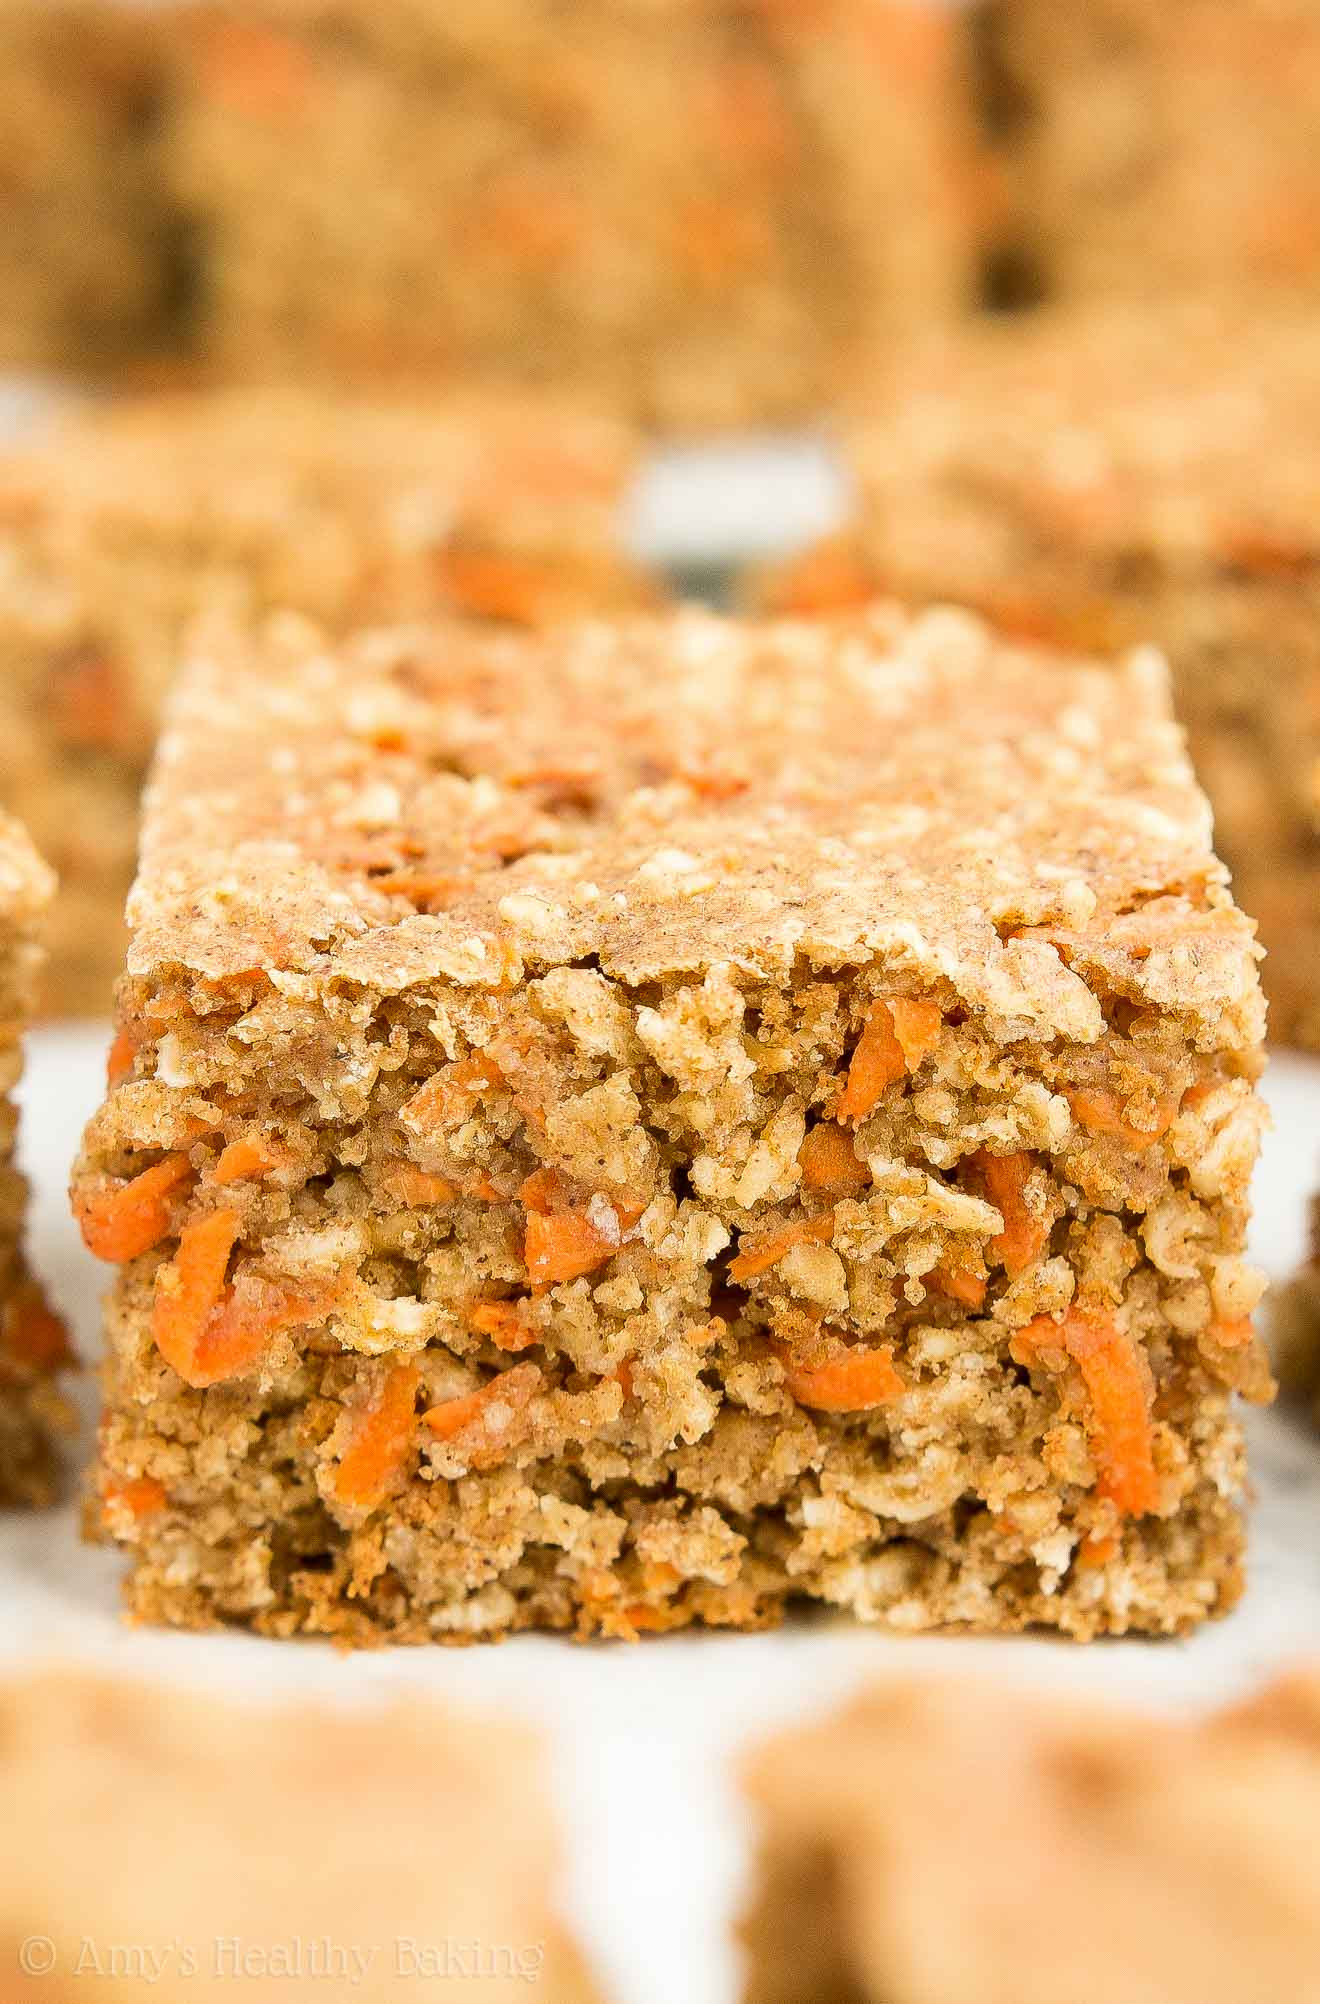 Healthy Carrot Snacks  Healthy Carrot Cake Oatmeal Snack Cake